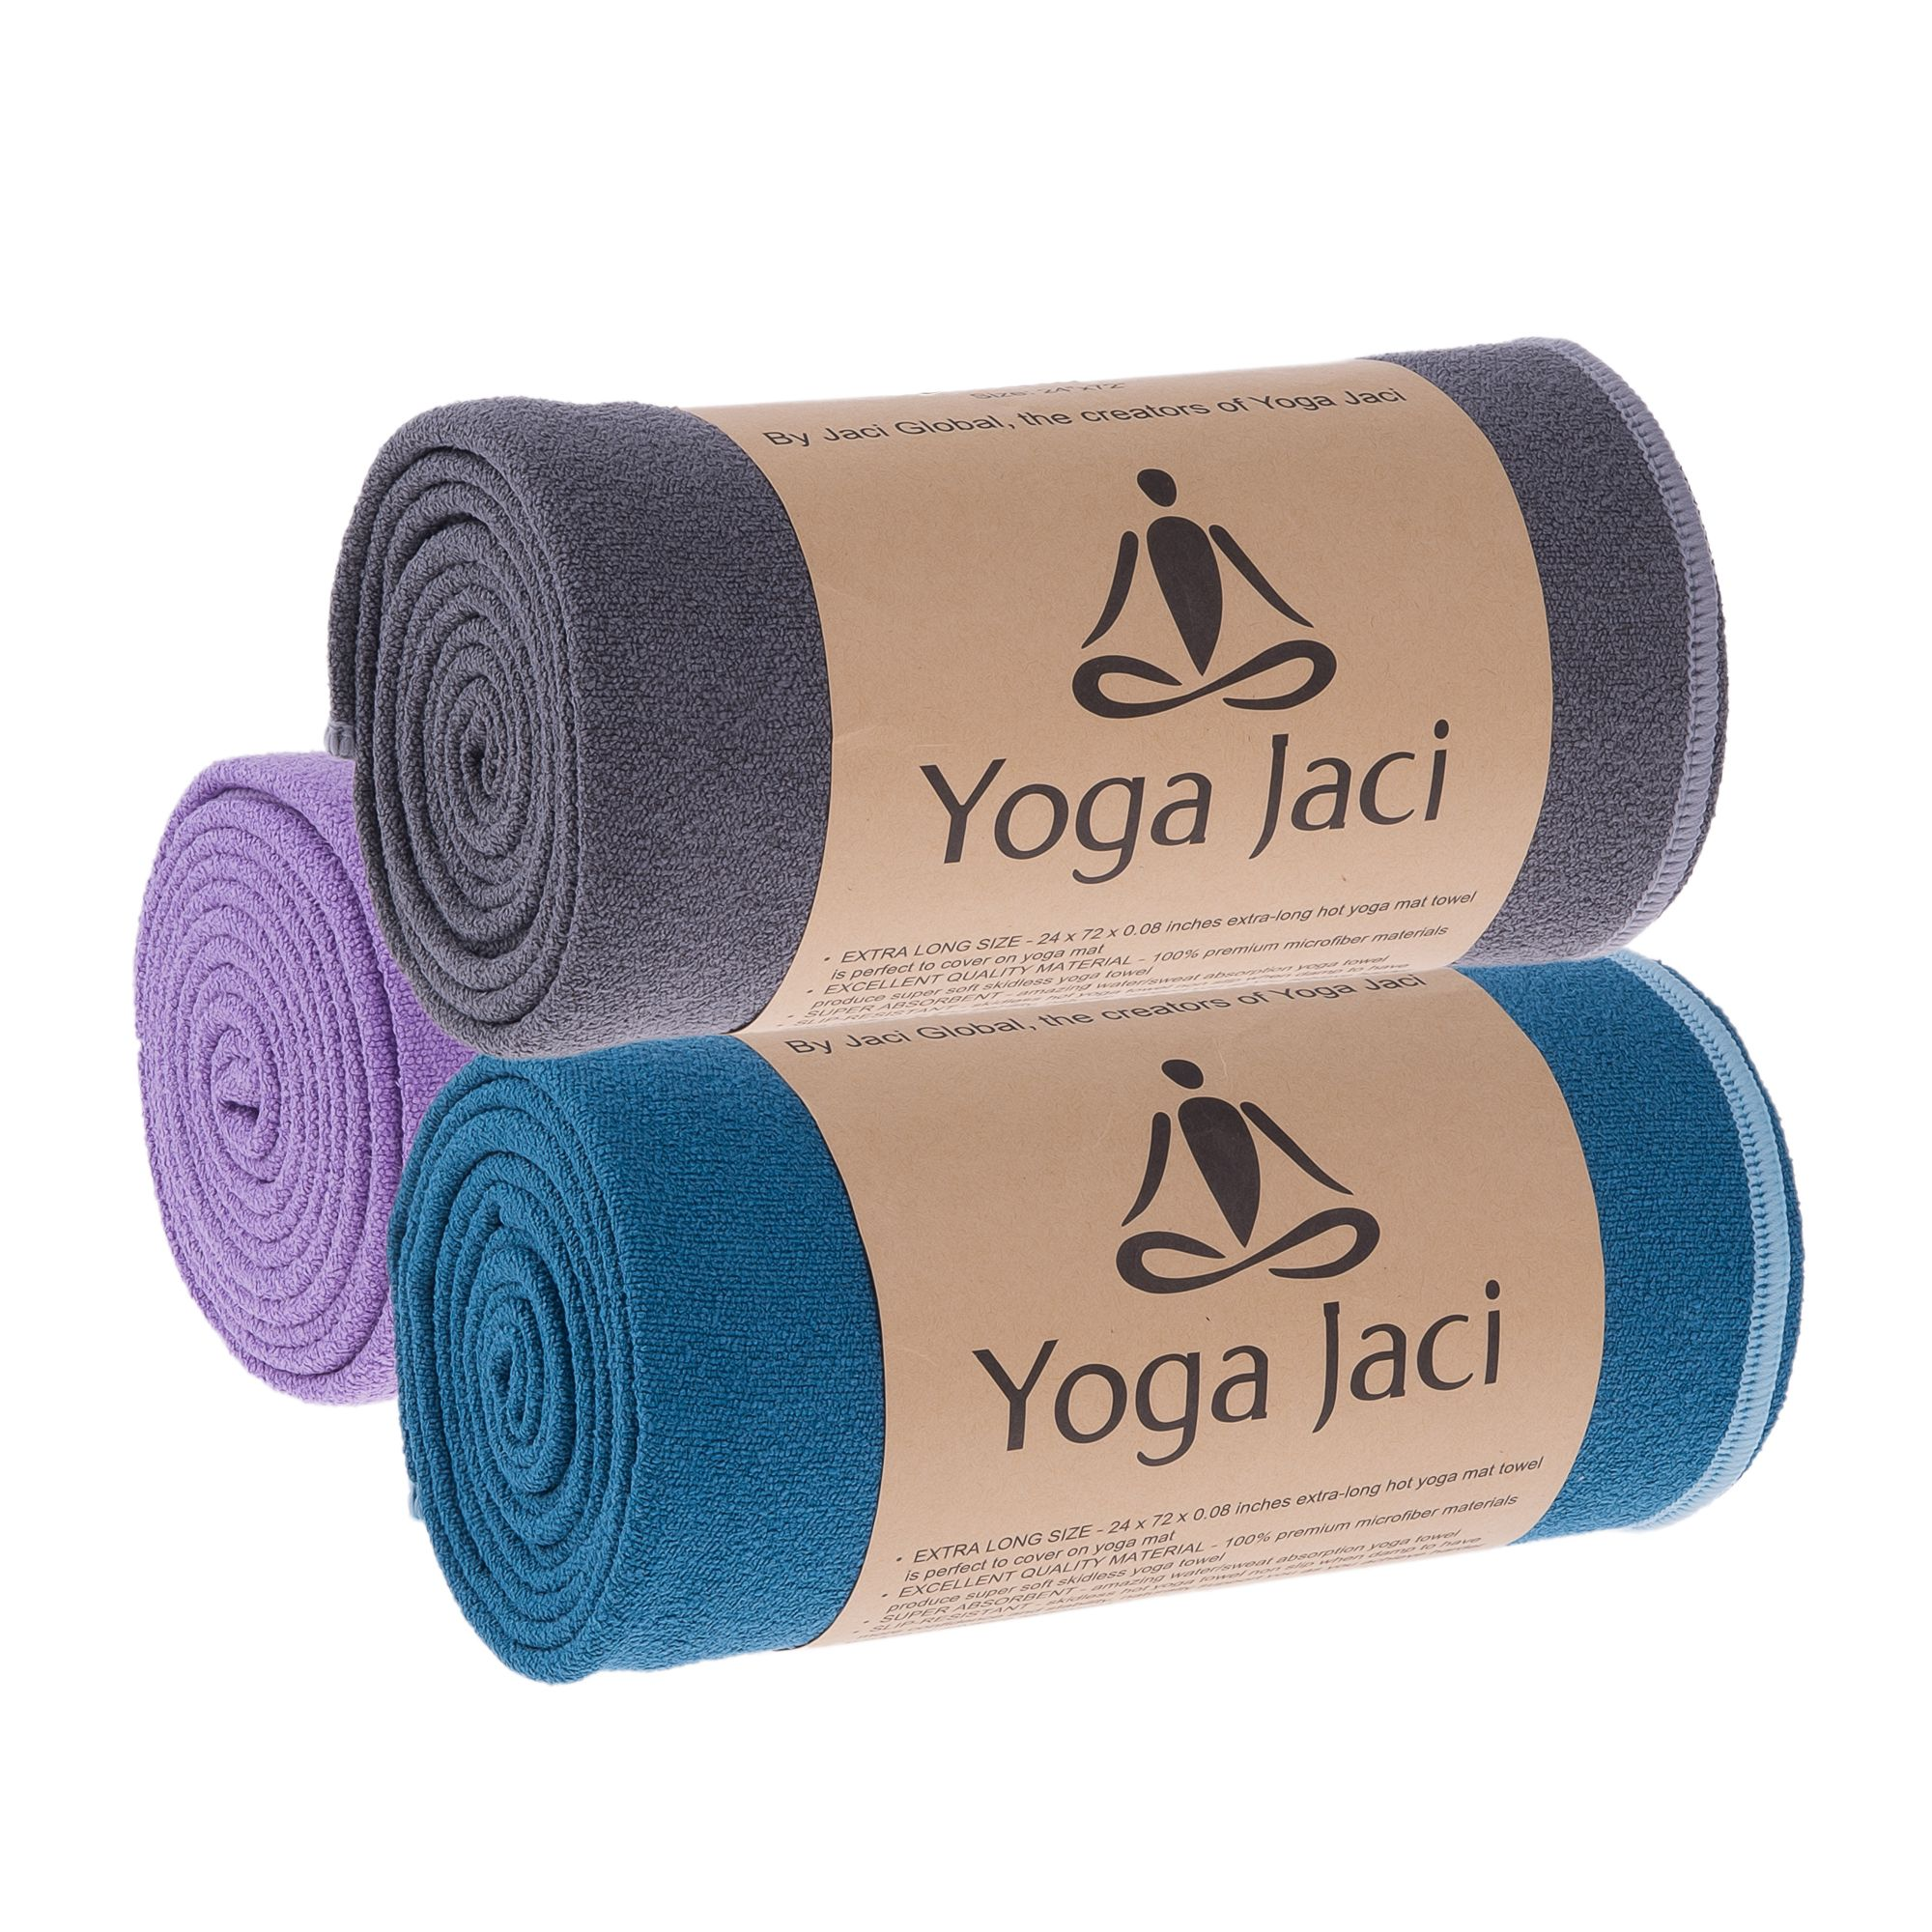 mats best shoulder for just yoga priti pilates kenny an tools hot mat collection in products